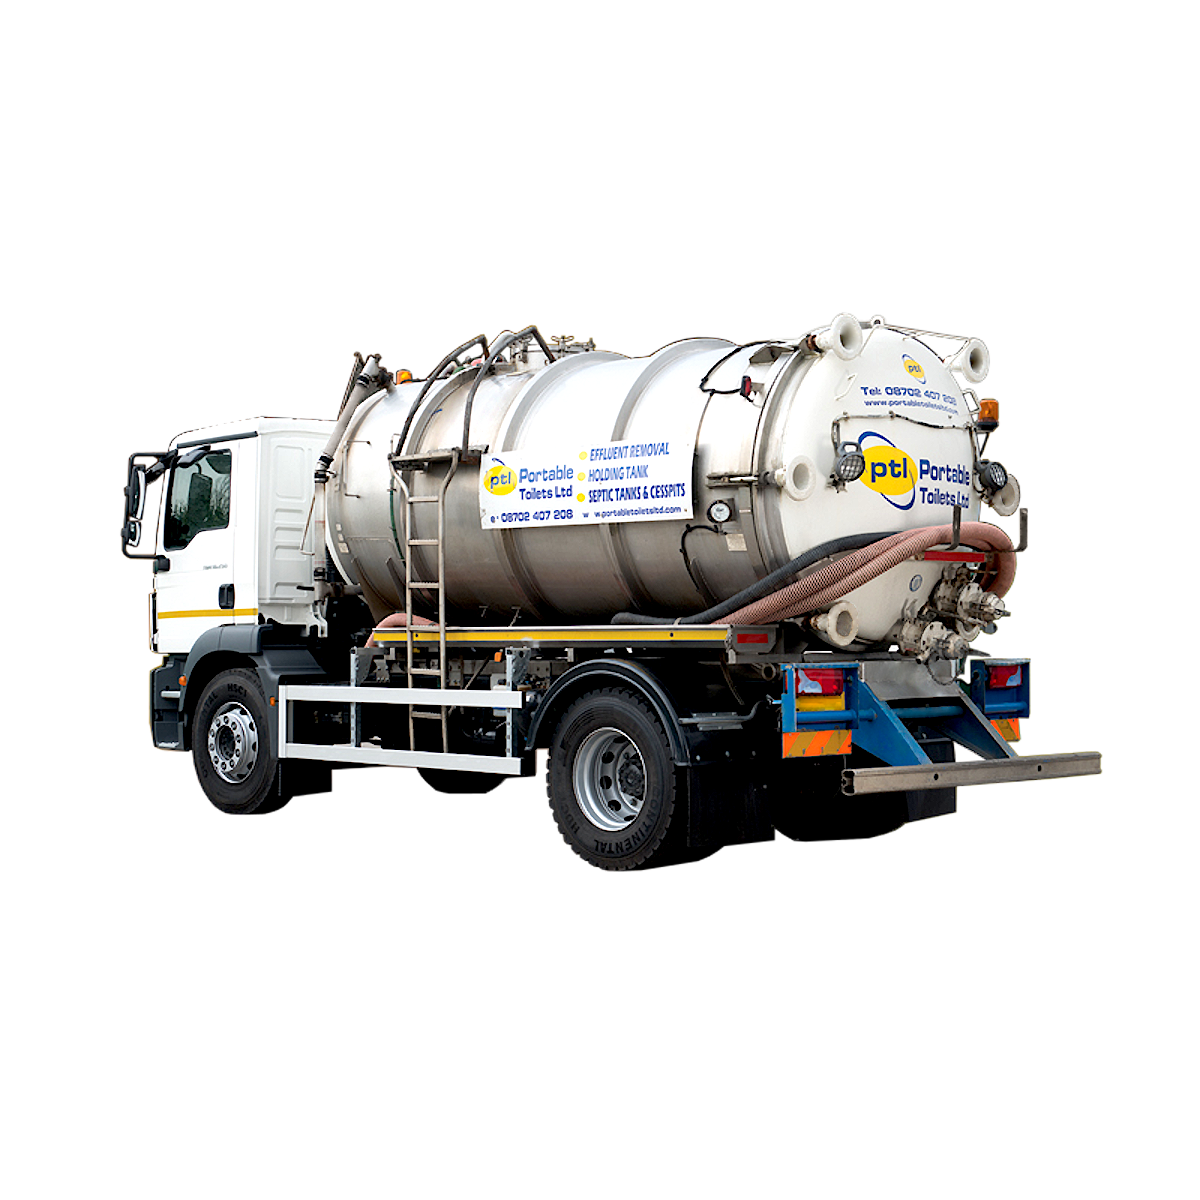 other services of sanitation equipment supply tank empty septic liquid waste